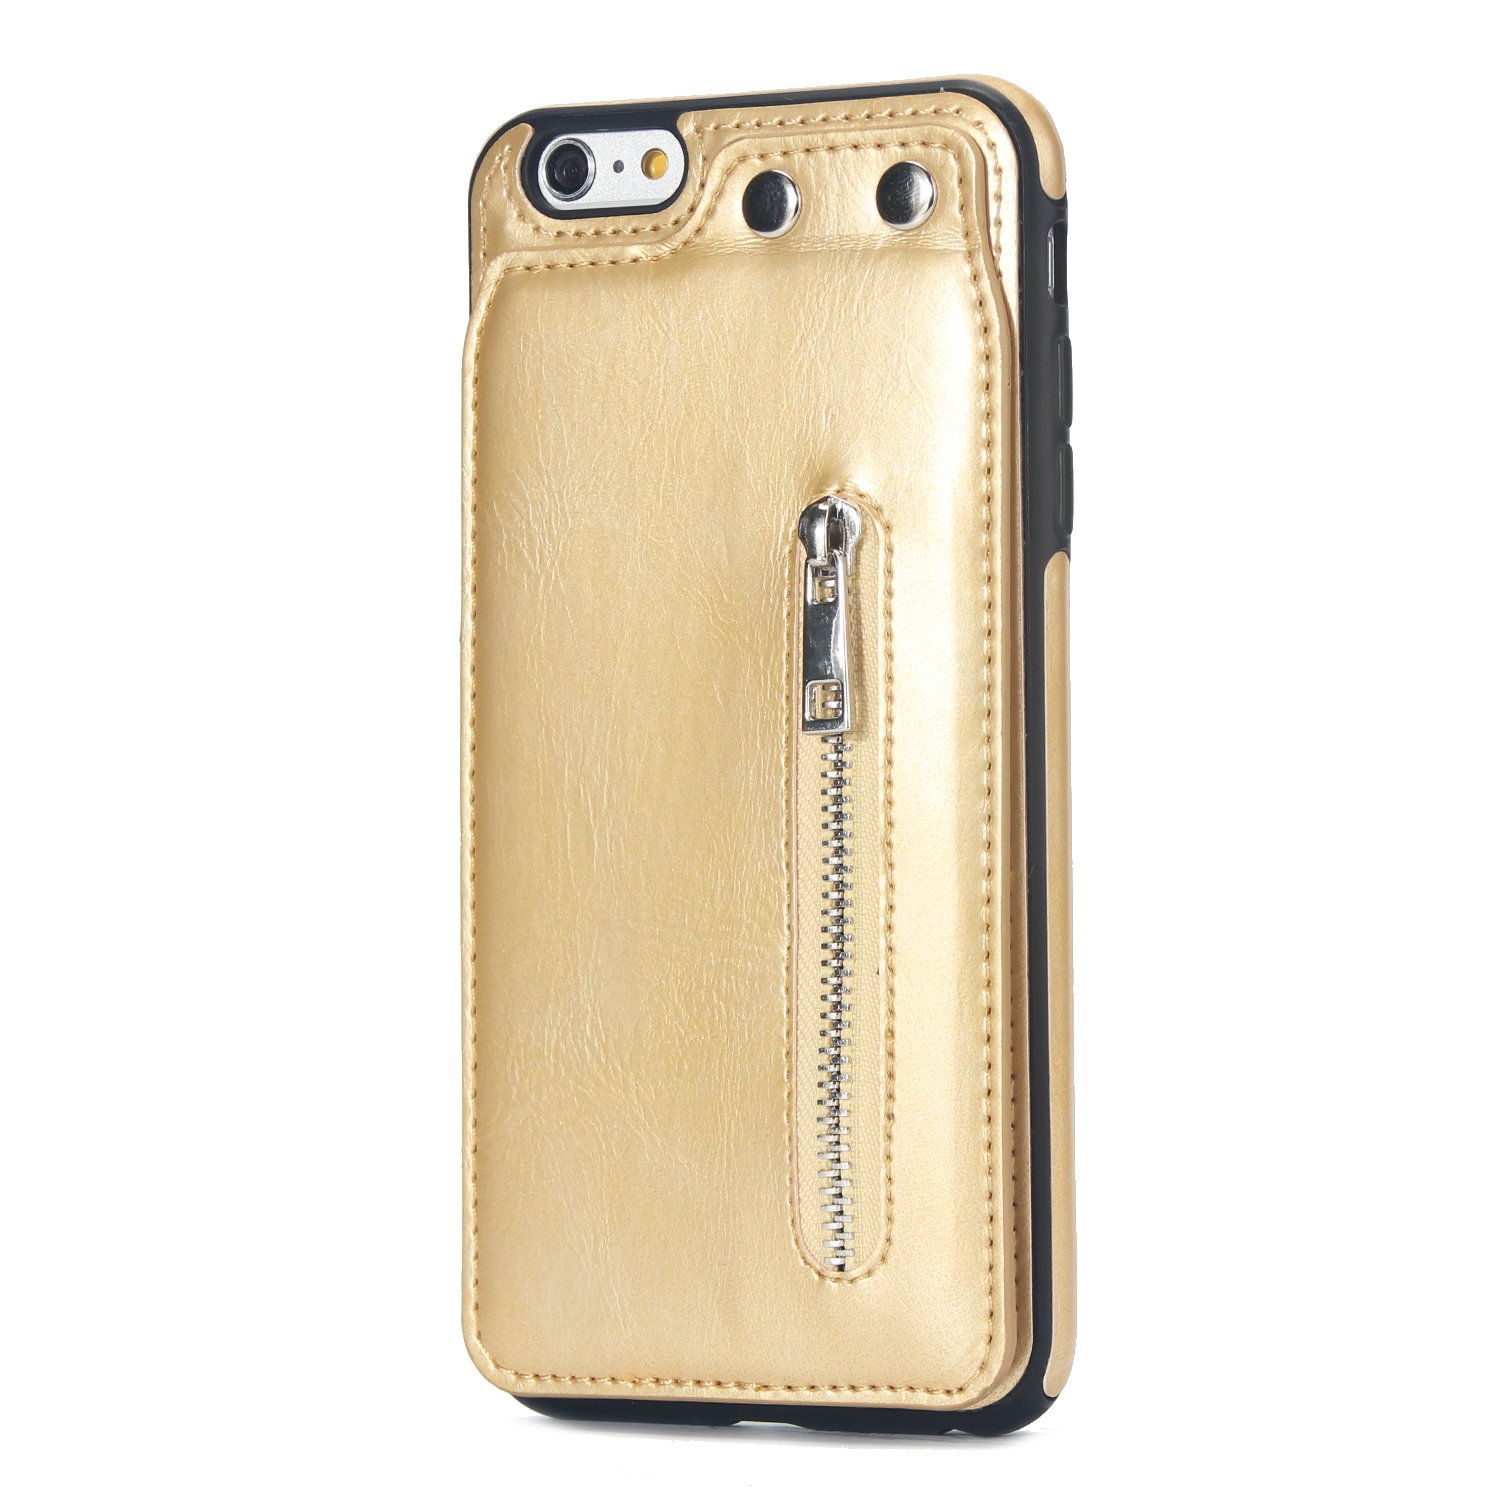 Case for iPhone 6 Plus/iPhone 6S Plus Flip Case Premium PU Leather Wallet Cover with Card Holder Money Pocket Durable Shockproof Protective Cover for iPhone 6/6S Plus,Gold by ikasus